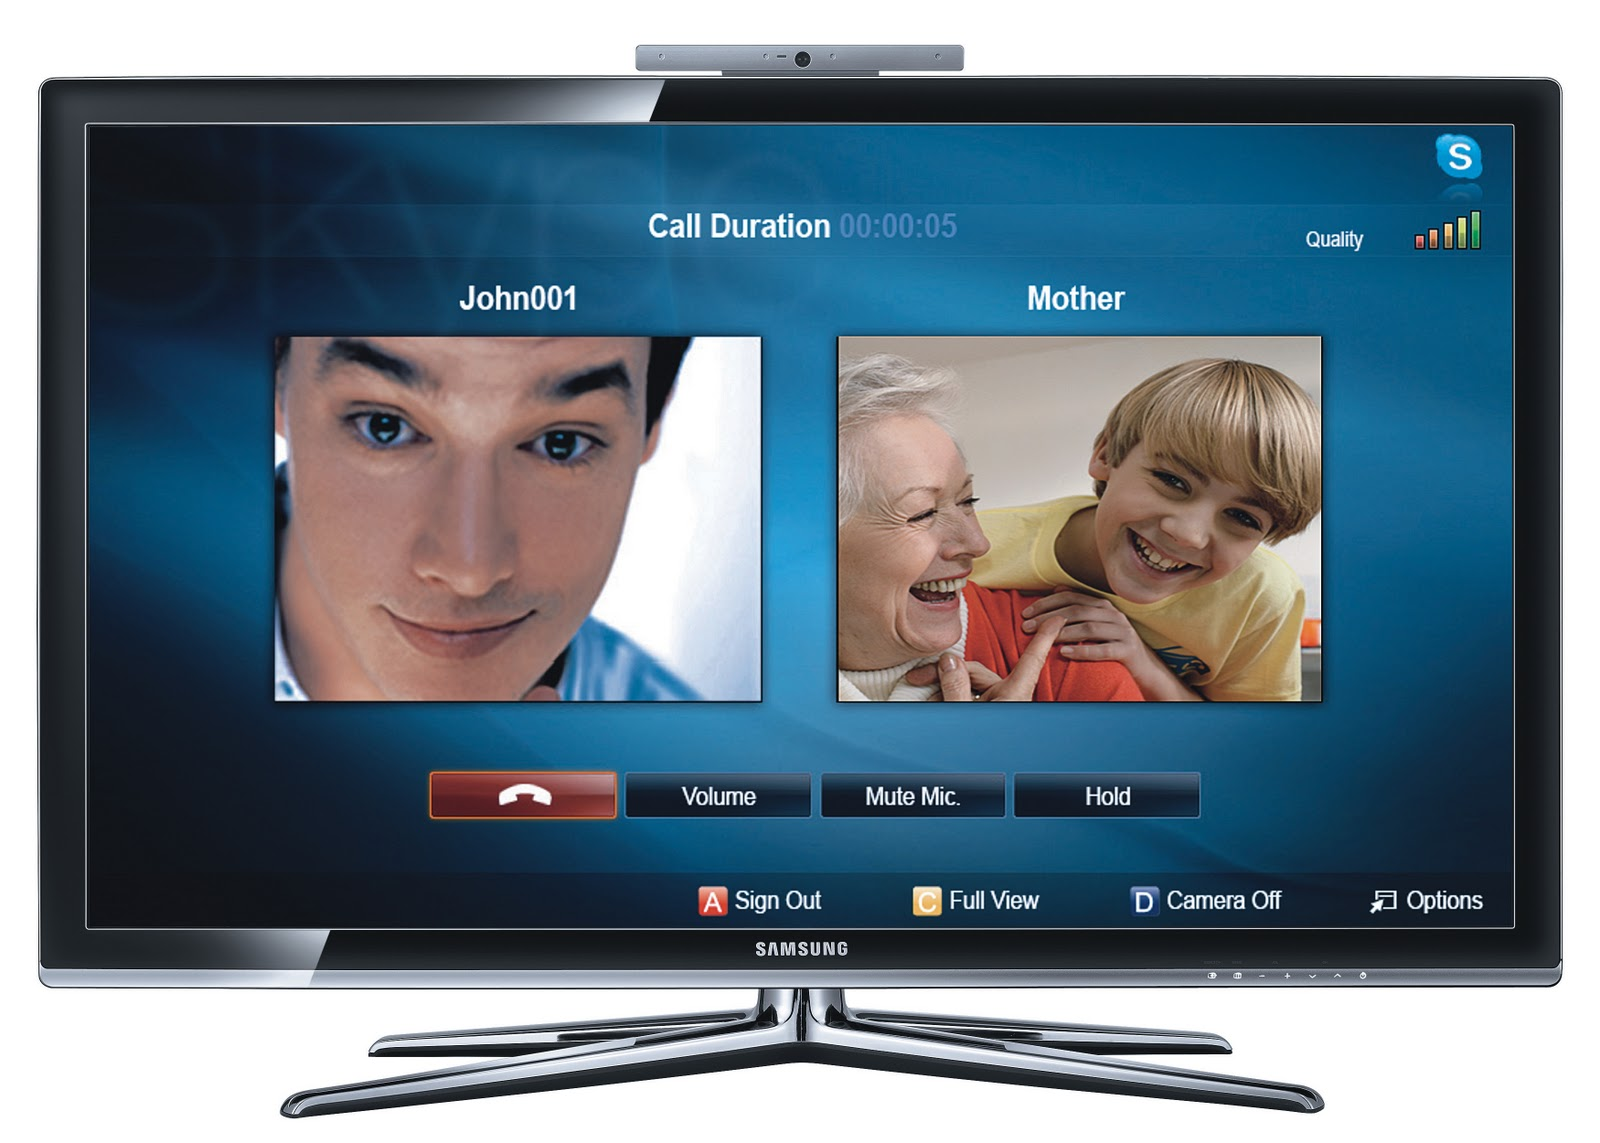 Skype on Samsung TV: Enjoy the convenience and connectivity of free